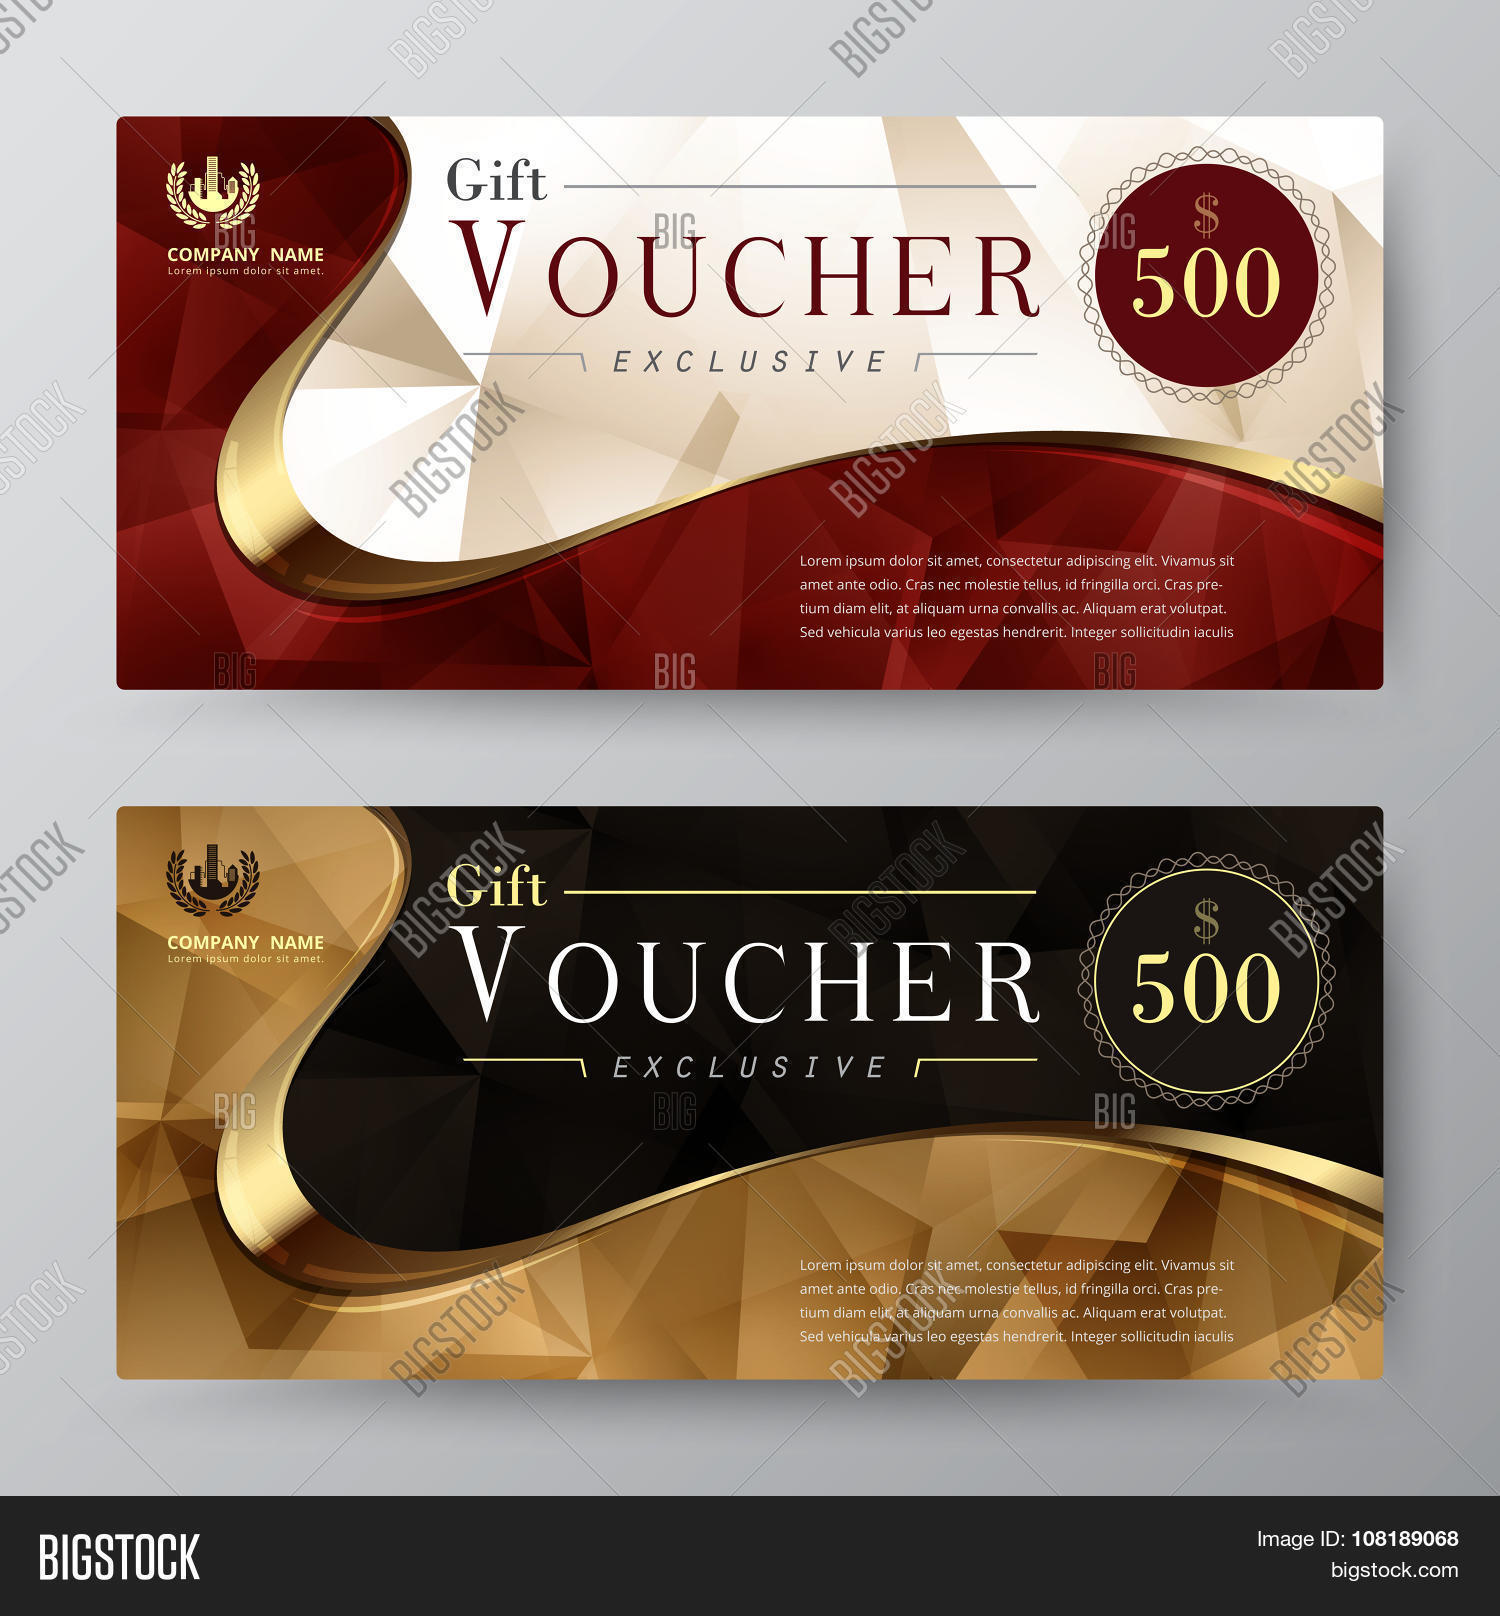 Luxury Gift Voucher Template. Vector & Photo | Bigstock